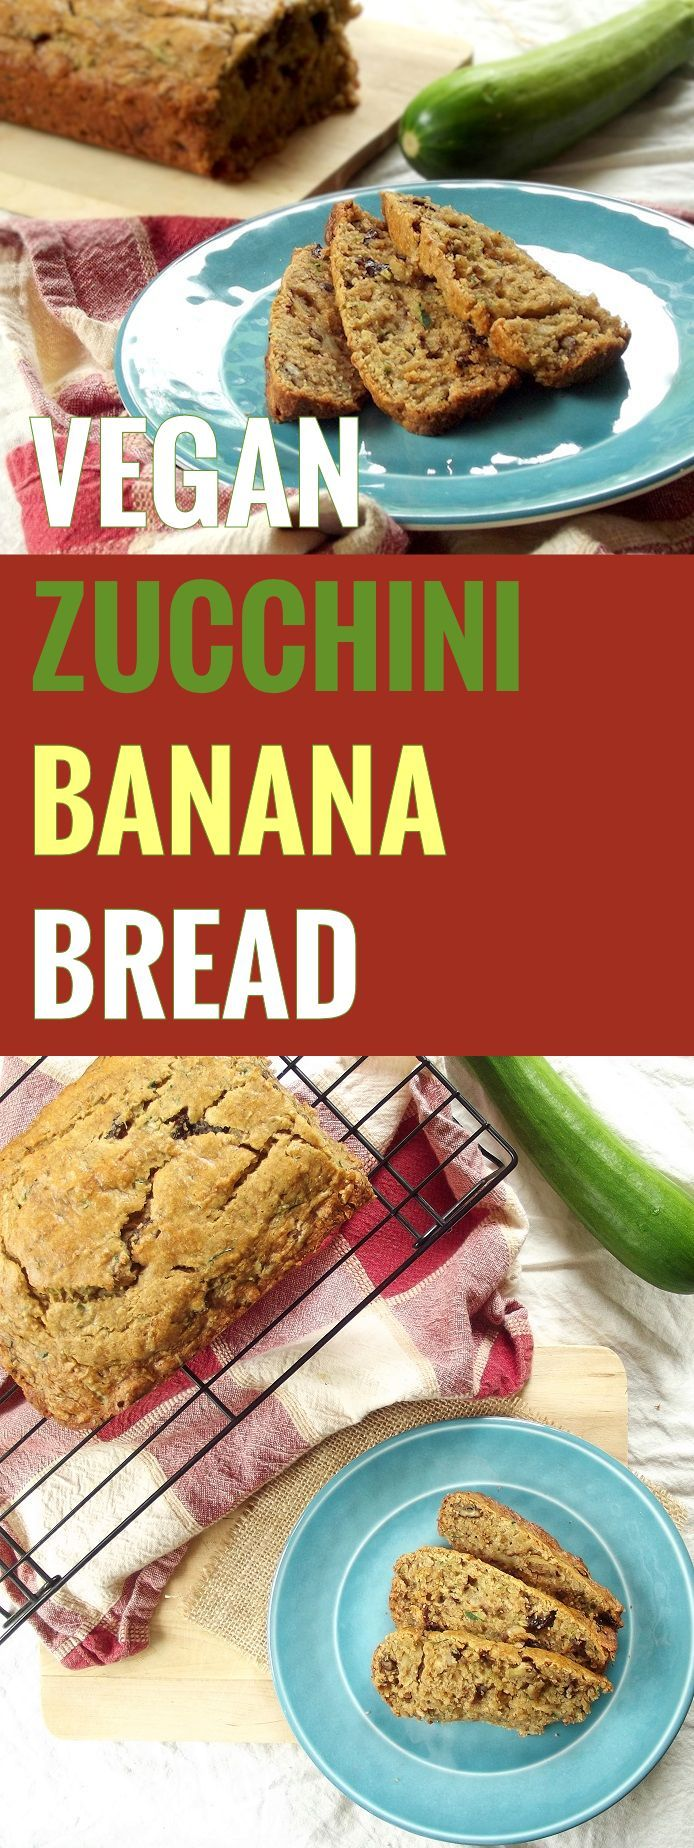 This vegan zucchini bread is moist, delicious, and bursting with sweet banana flavor, cinnamon, crunchy walnuts and sweet raisins. (Baking Bread Zucchini)